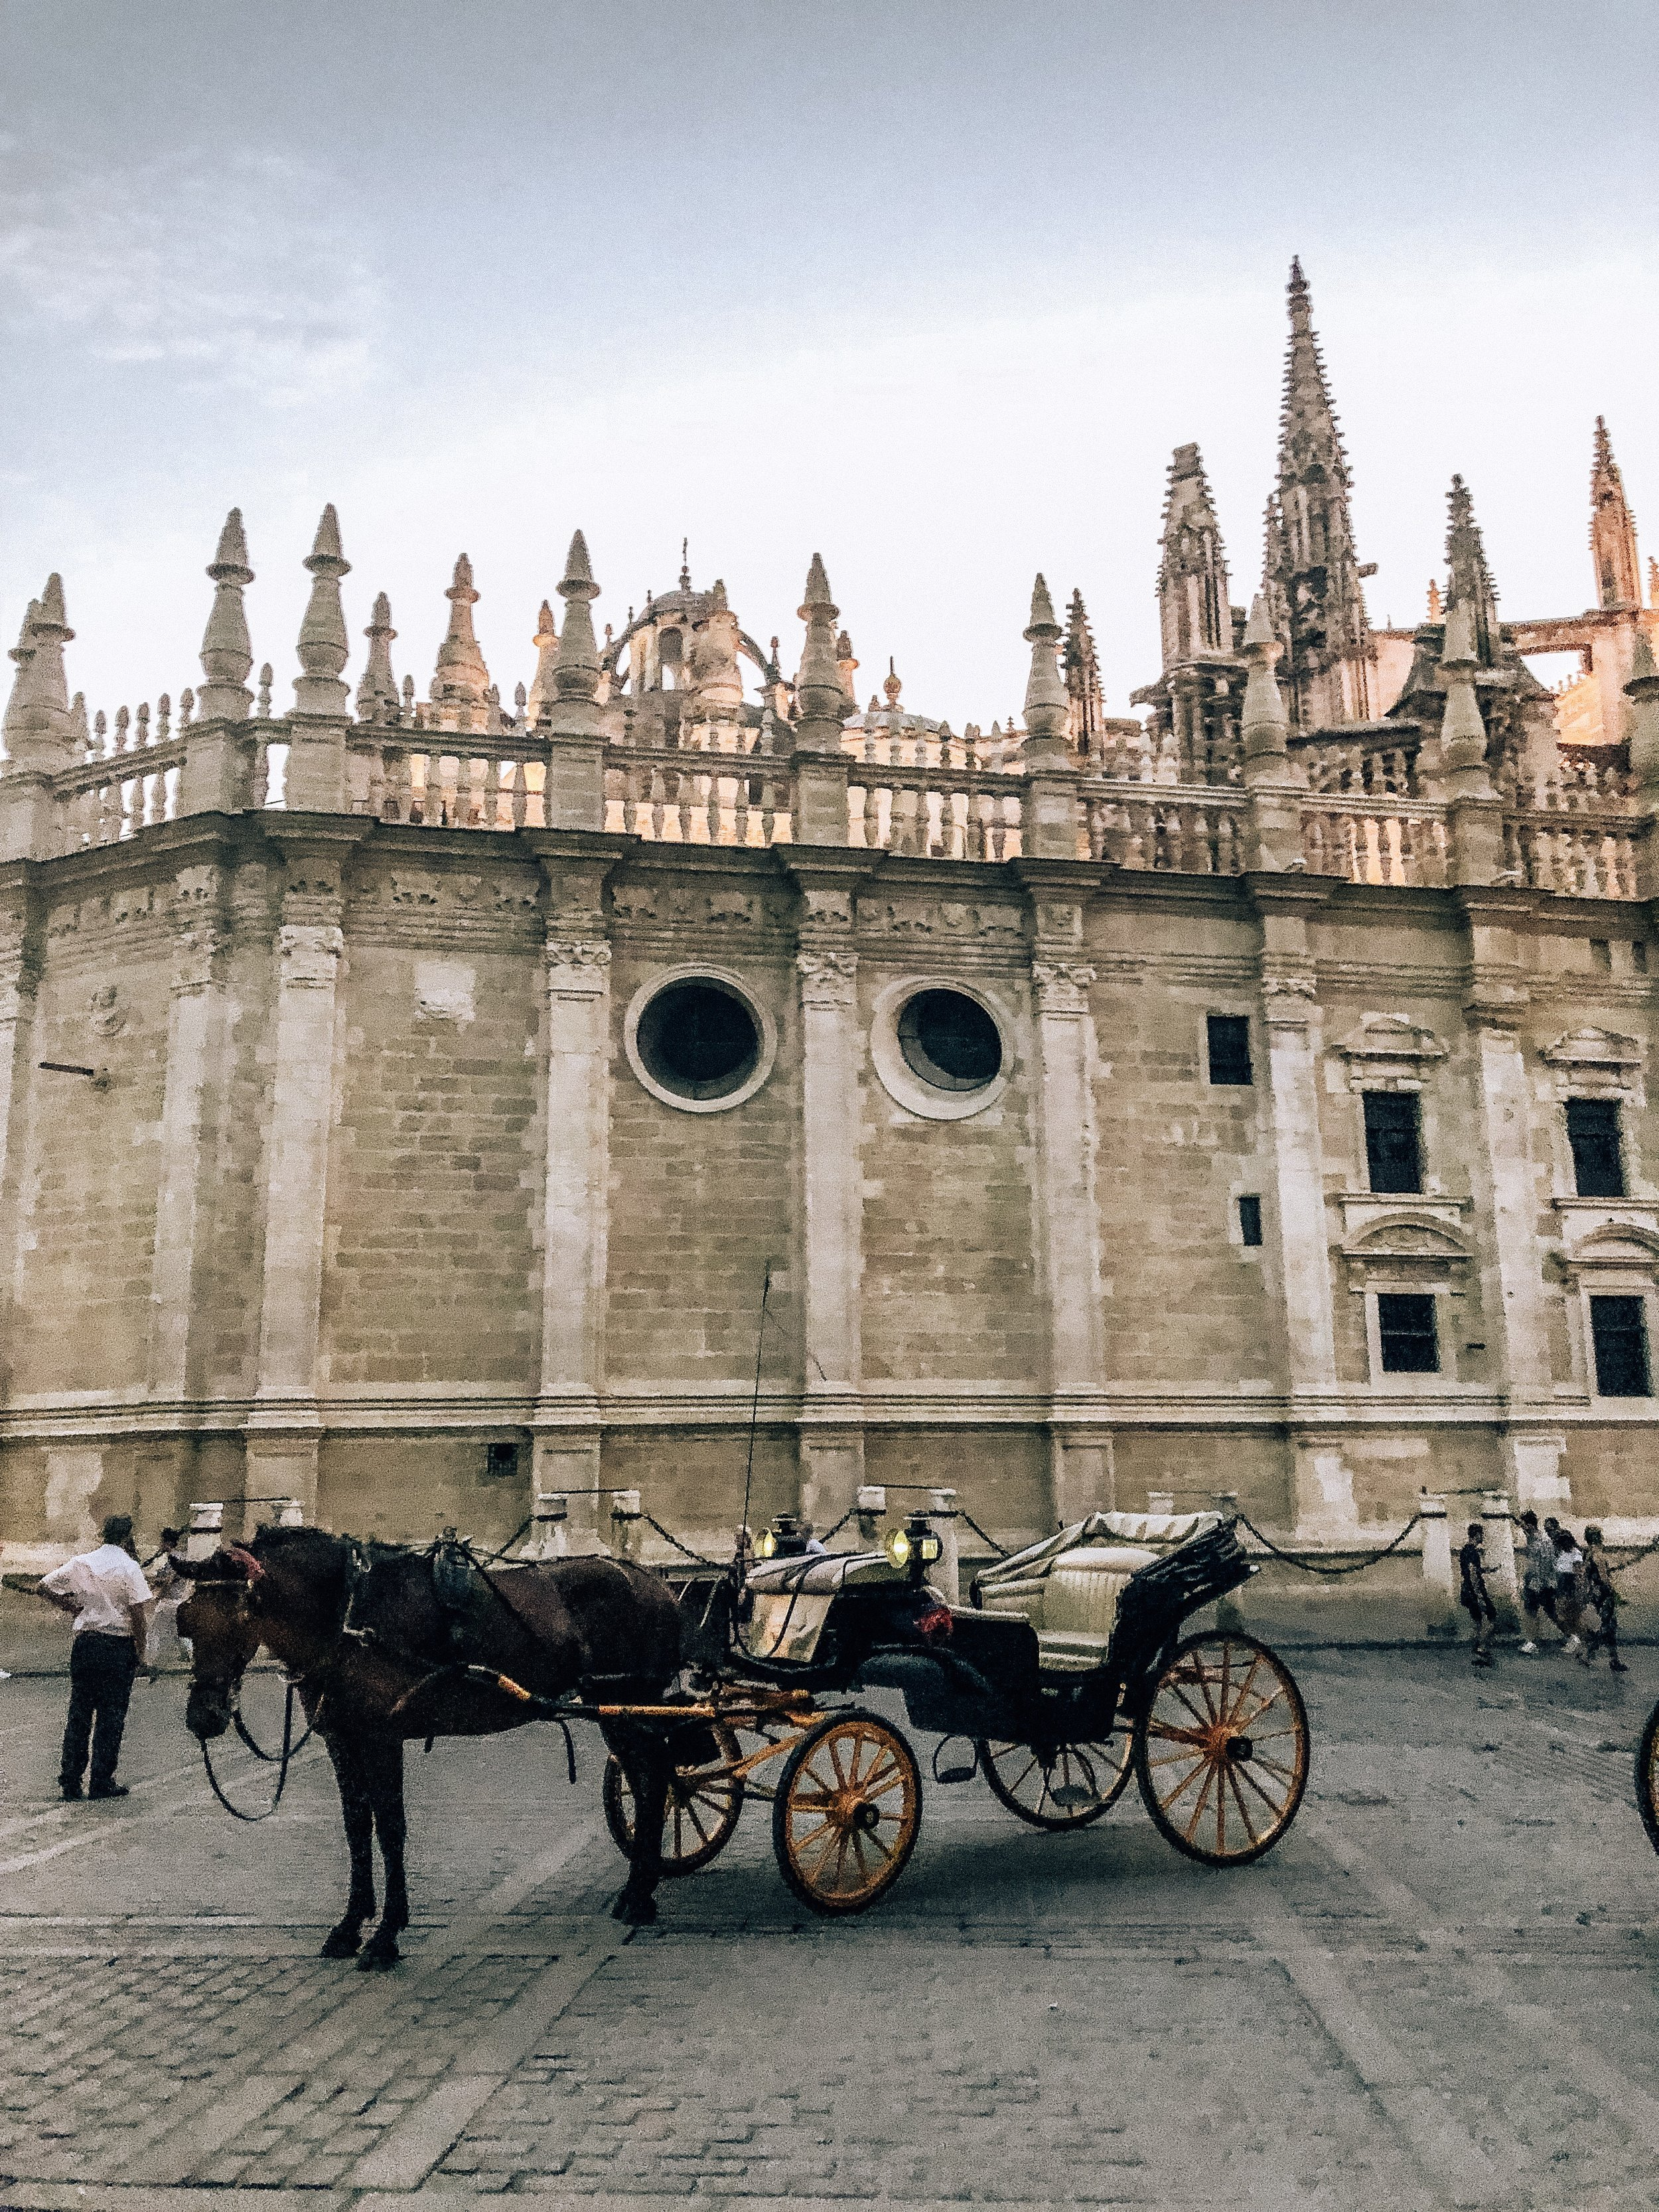 Horse carriages by the Cathedral de Sevilla